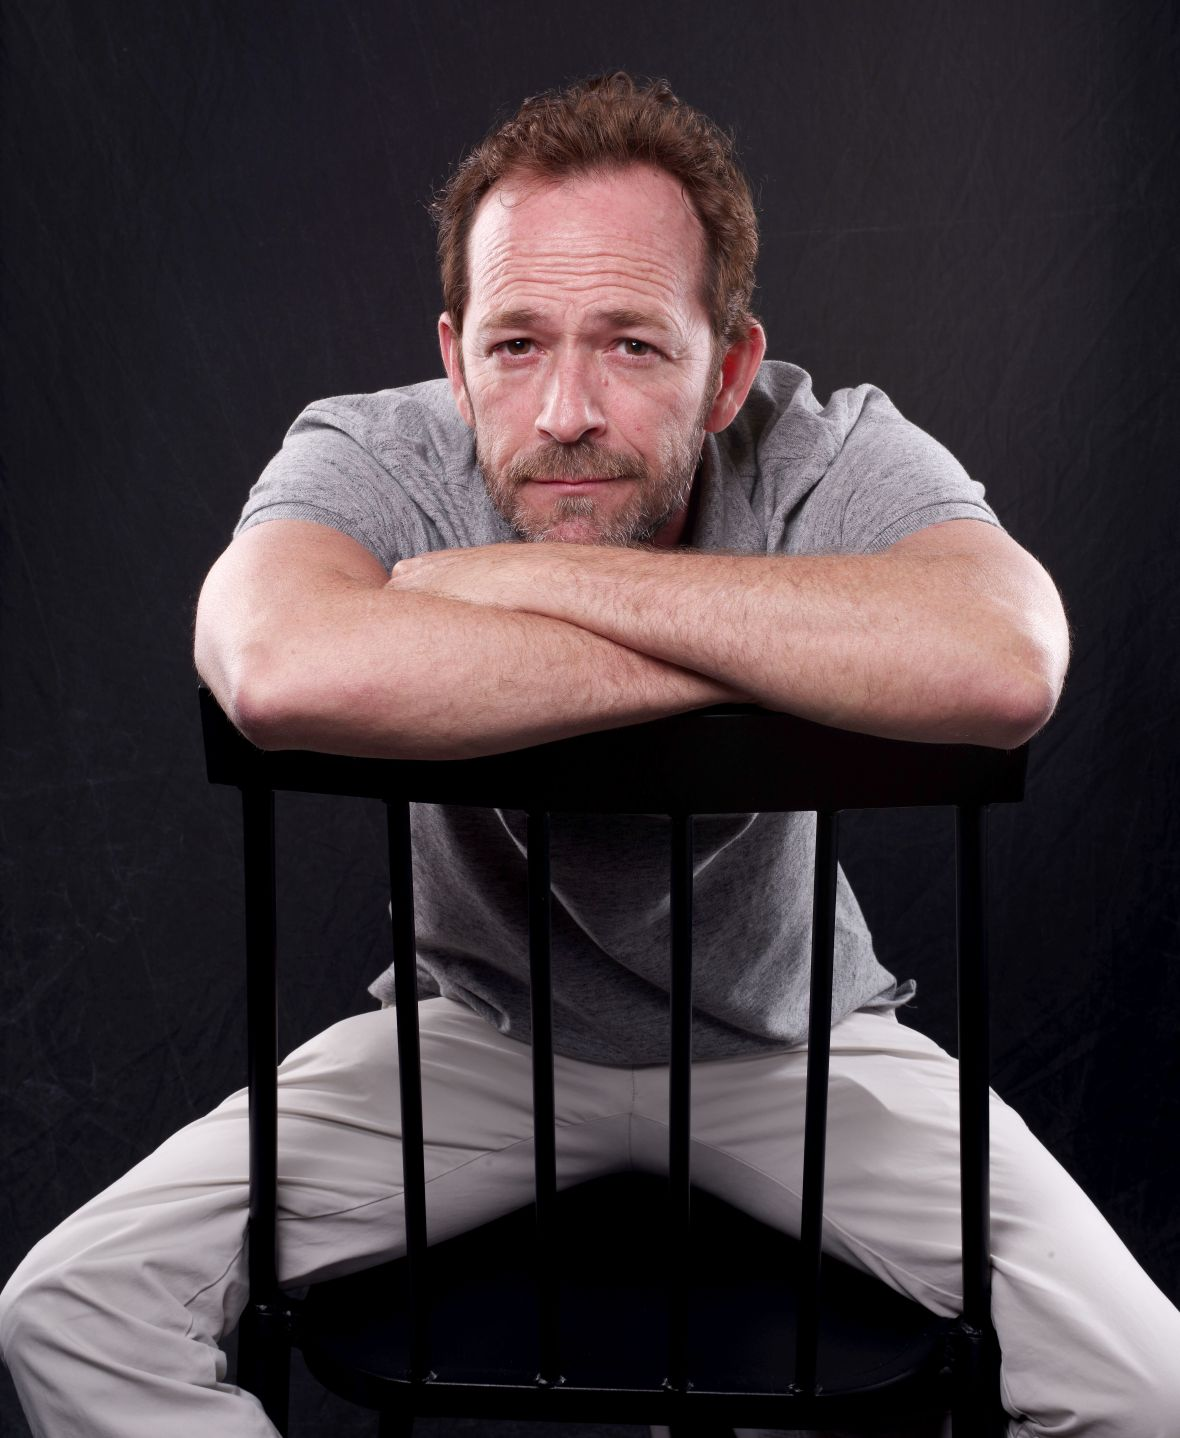 Luke Perry at San Diego Comic-Con 2018